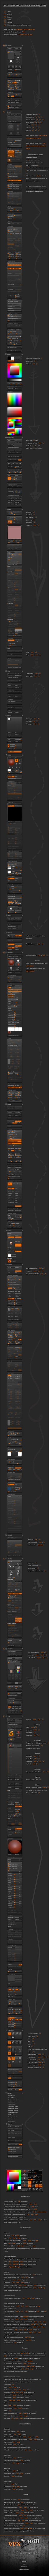 Zbrush menu and keyboard shortcut cheat sheet! - Michael Dunnam - www.vfxmill.com